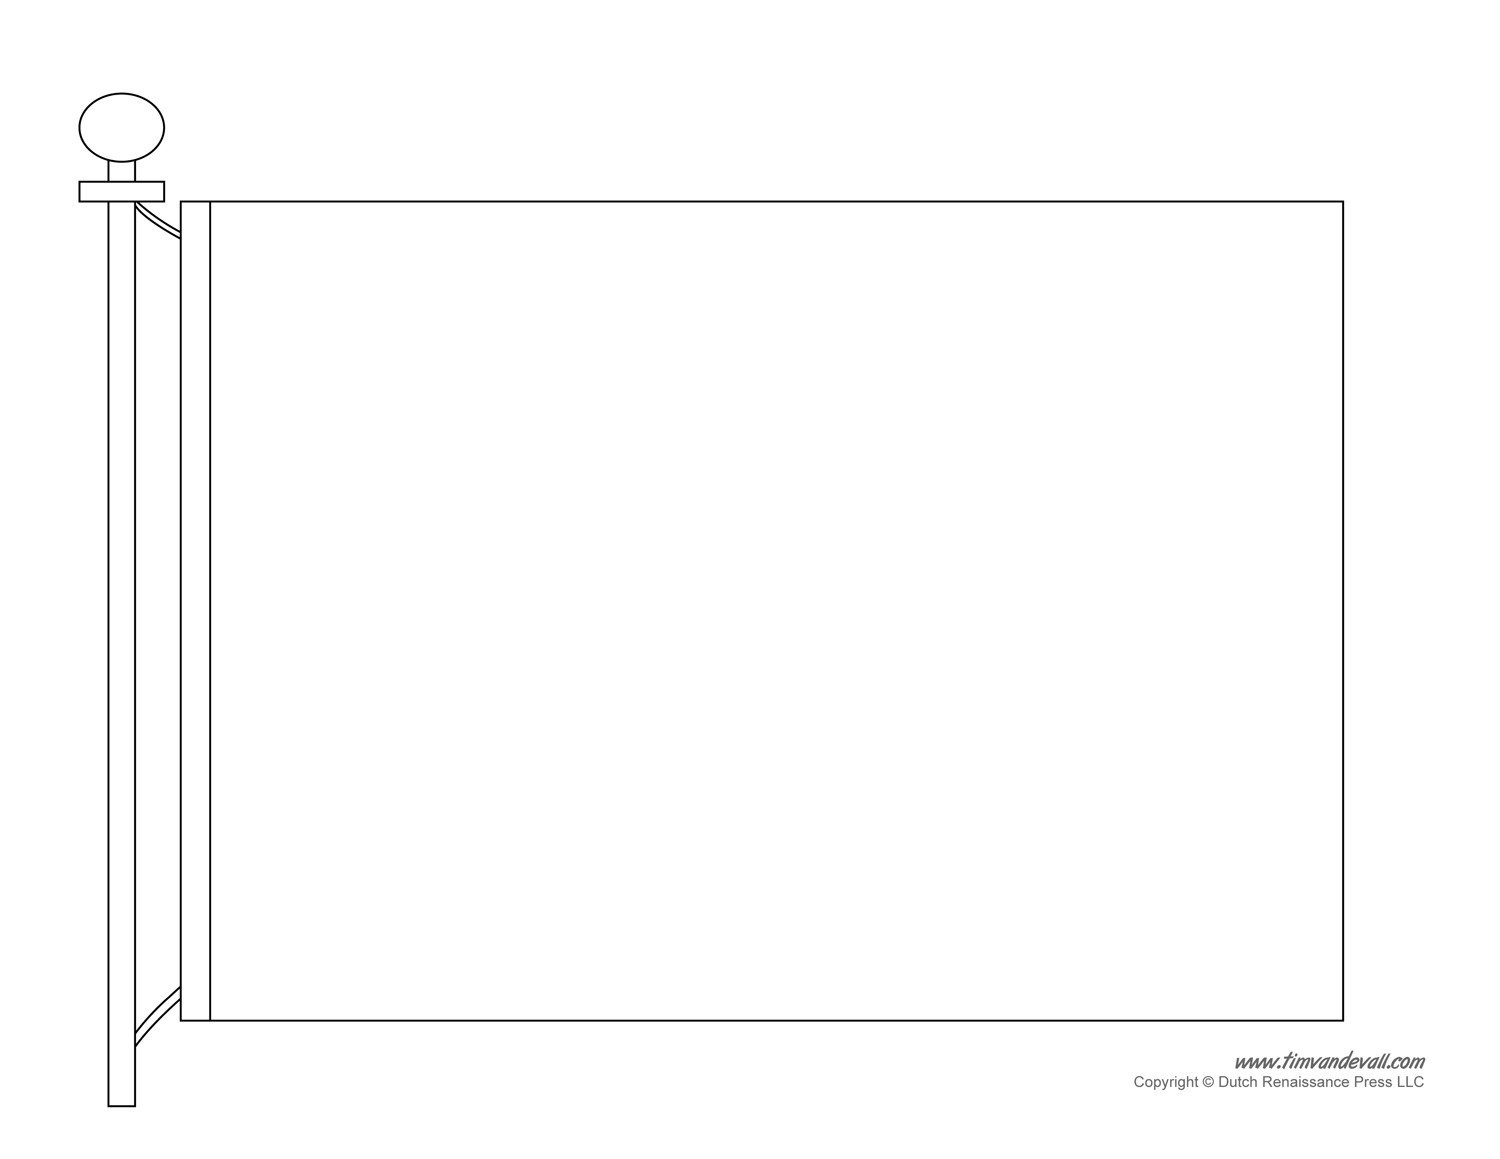 Invaluable image with regard to blank flag template printable